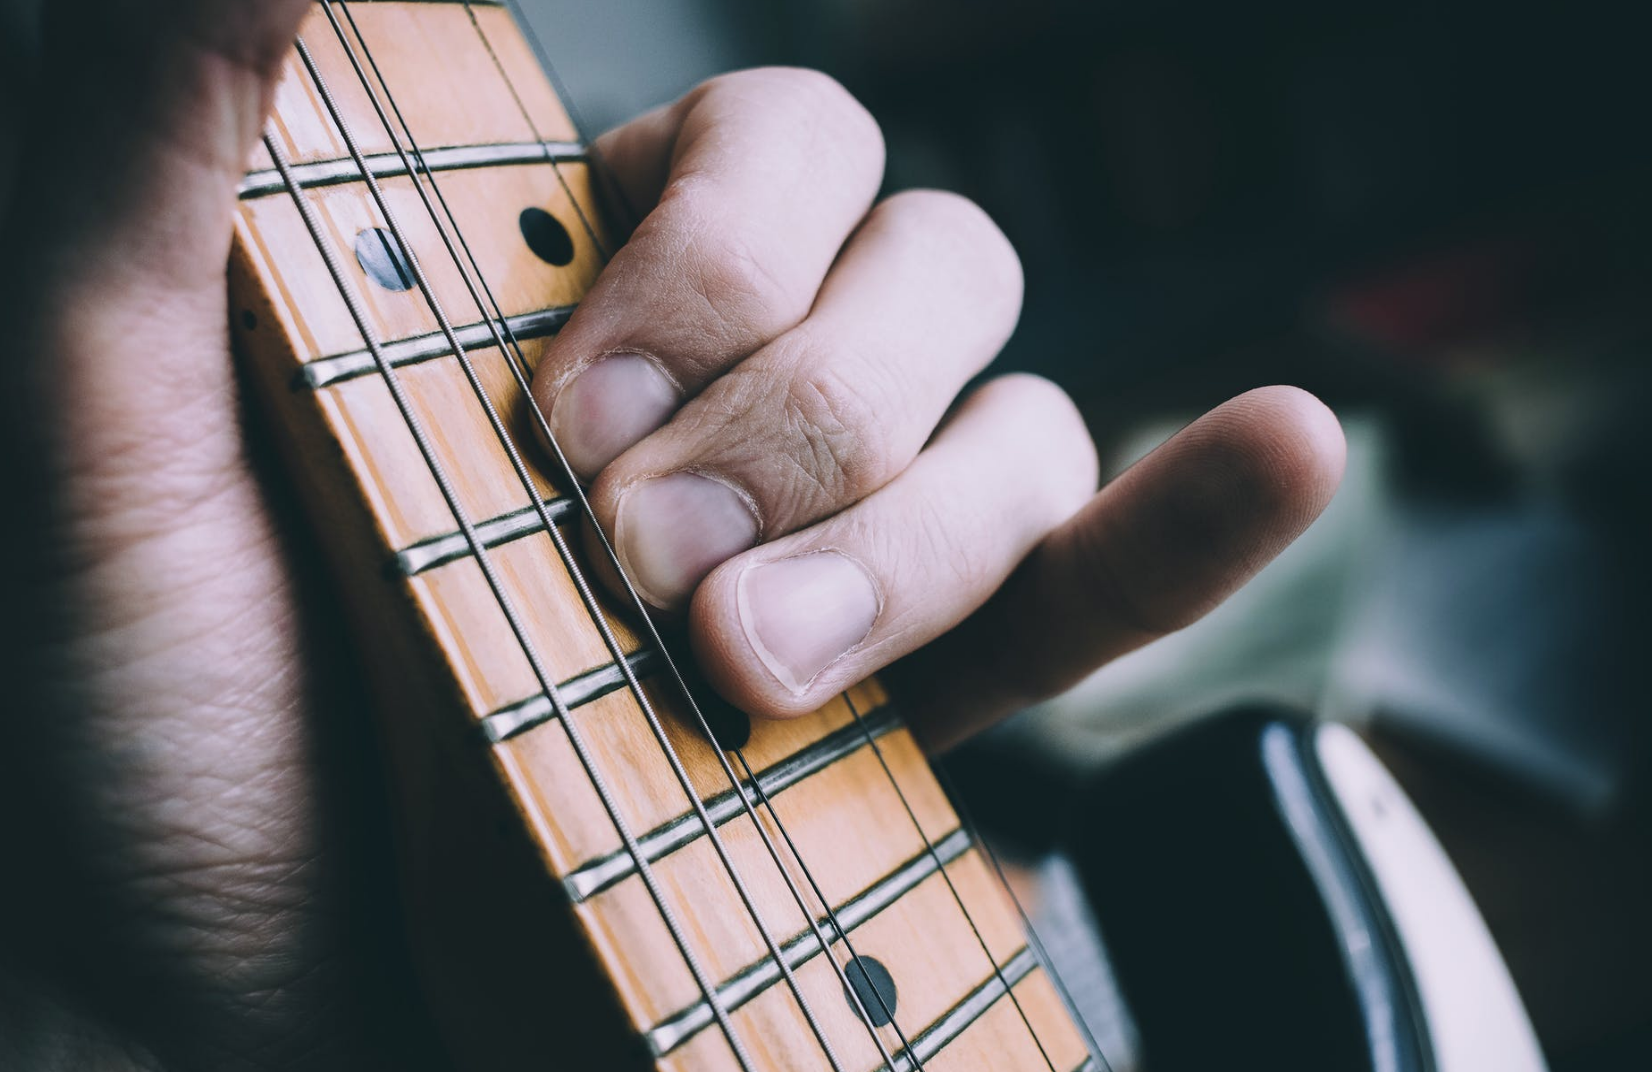 Mental Health Care - Marigold Music Therapy provides both individual and group music therapy sessions to individuals with varying mental health needs, in home, or at their treatment facilities.